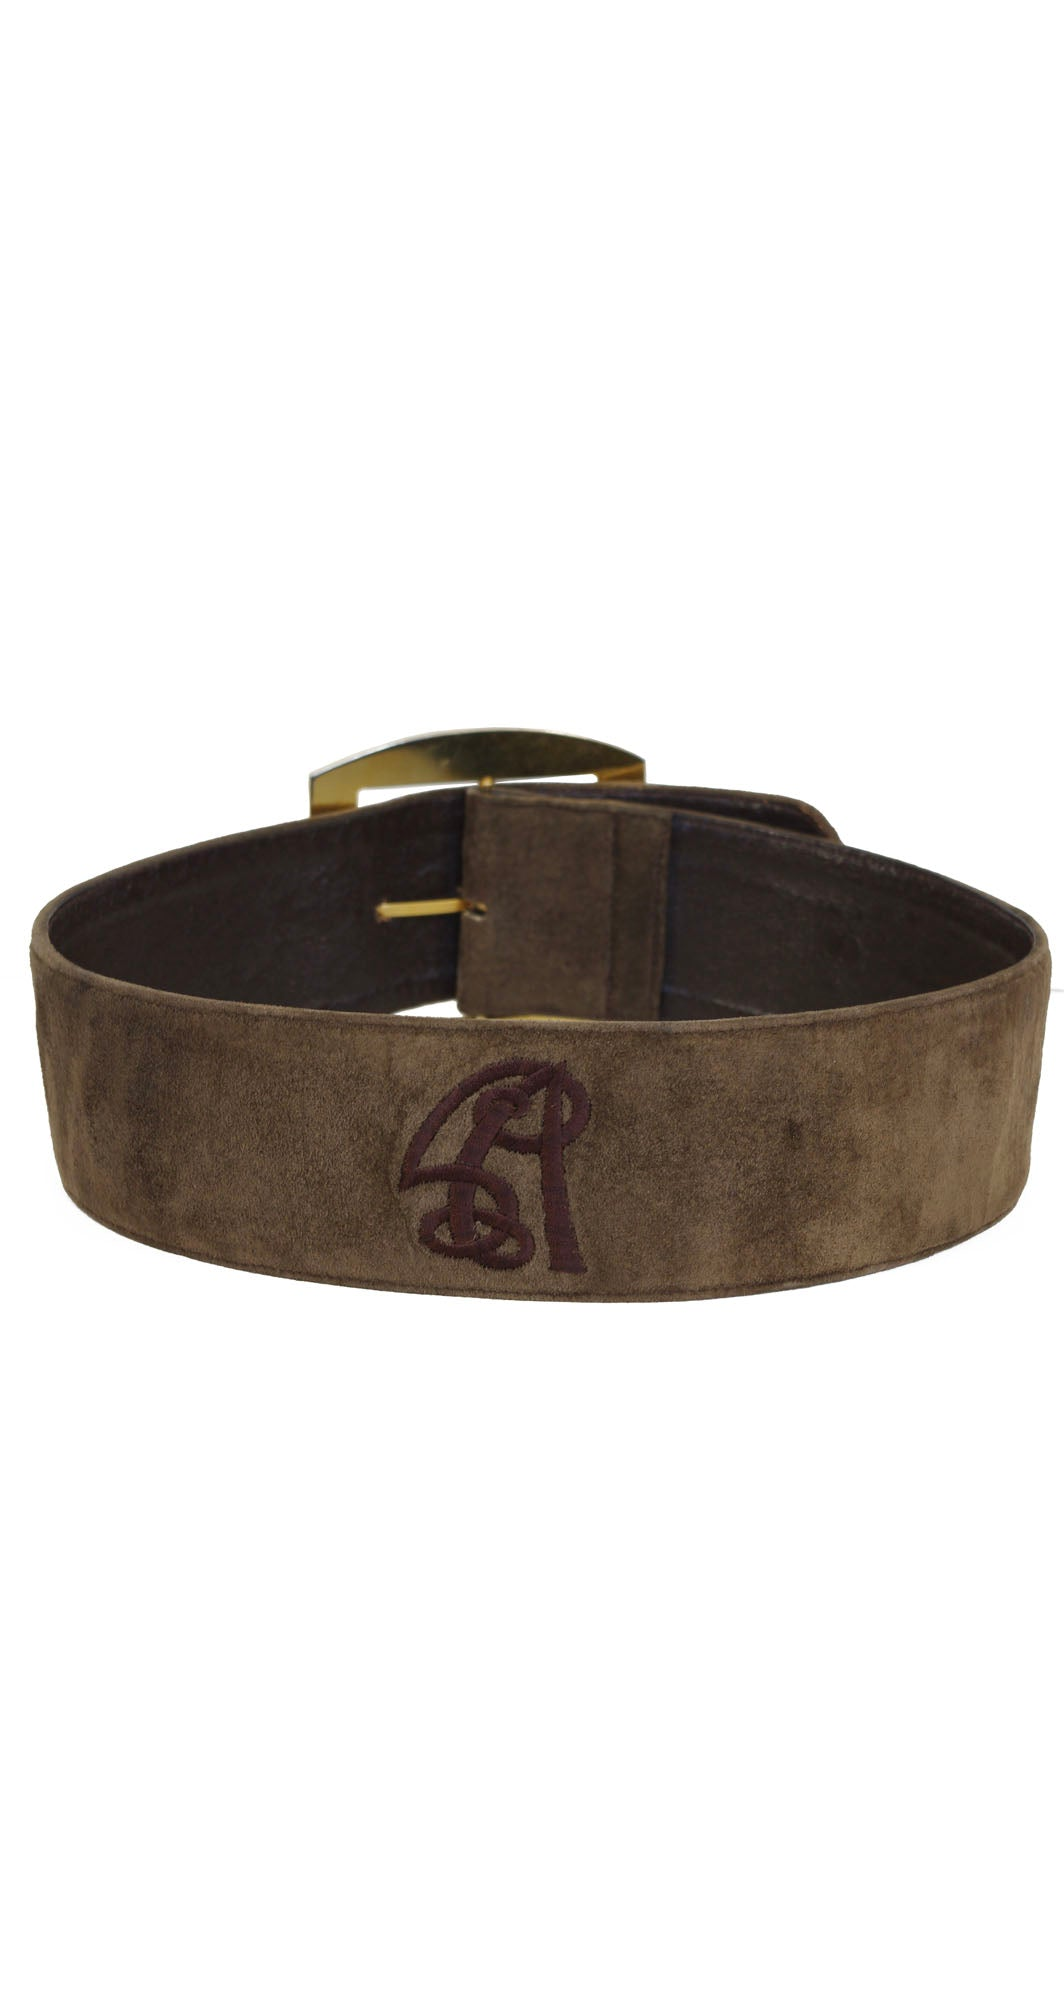 1980s Monogram Brown Suede Wide Waist Belt